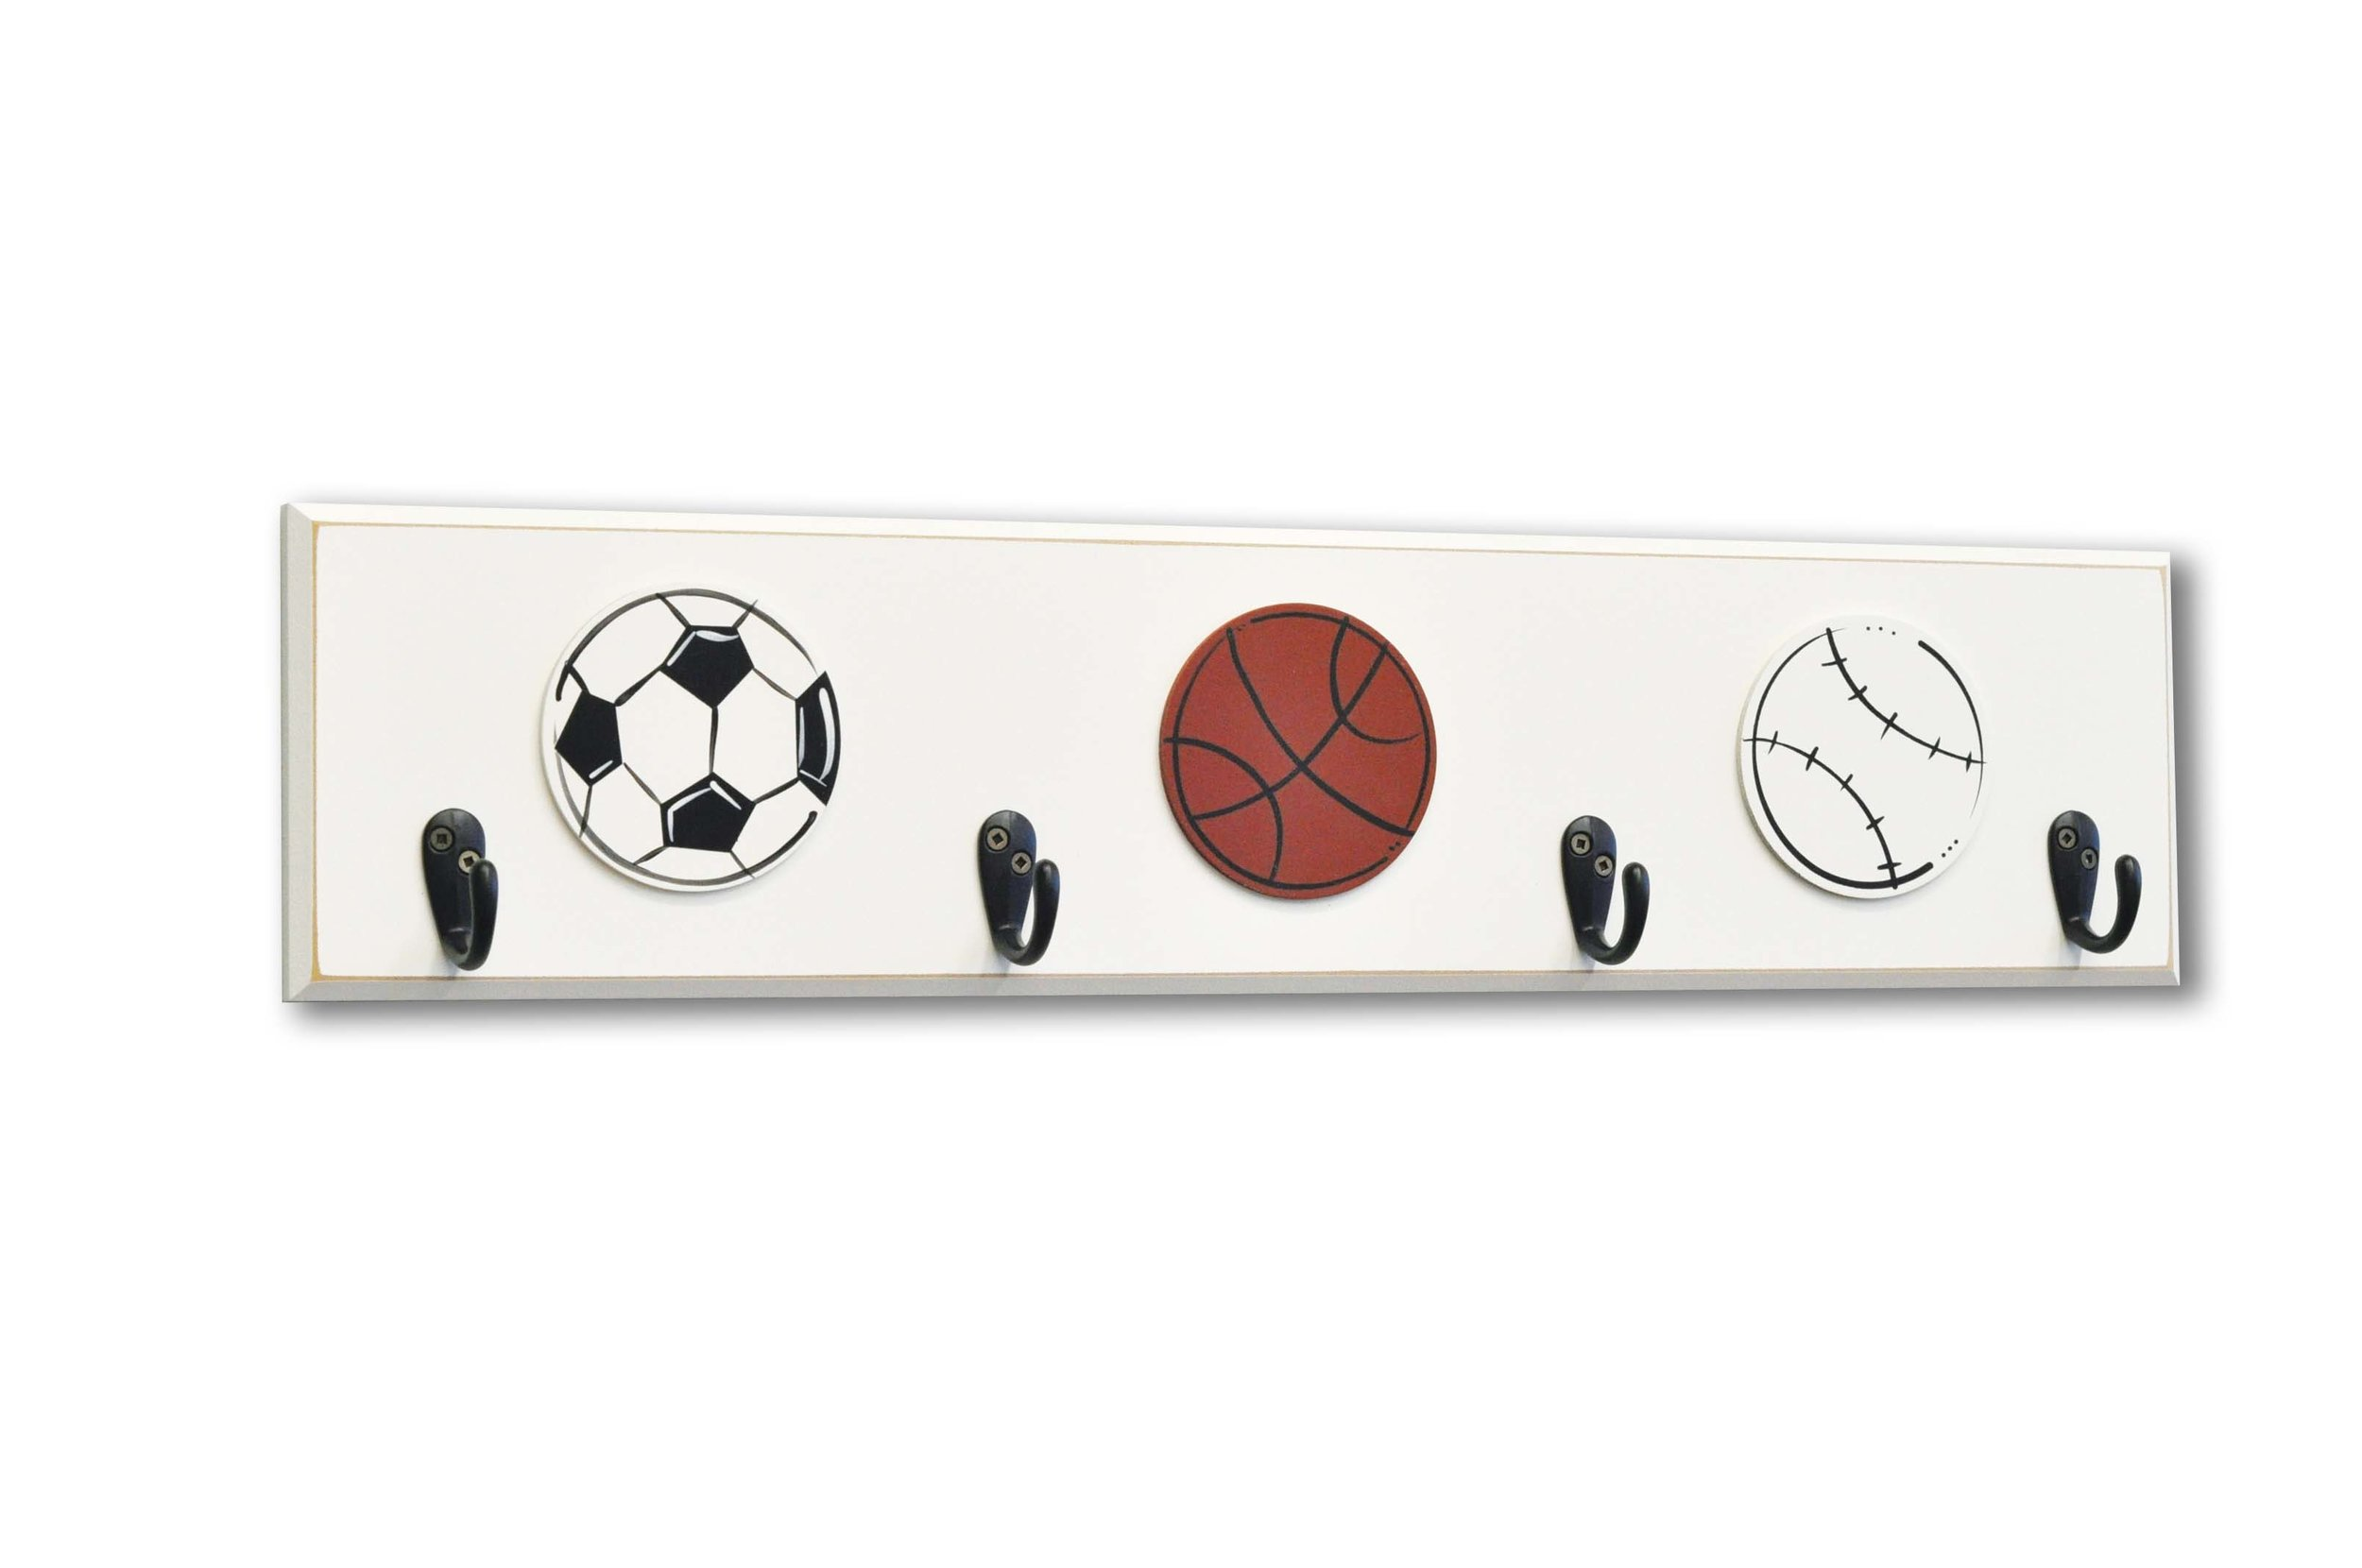 Soccer Sports Room Decor, wall hooks - Homeworks Etc Kids